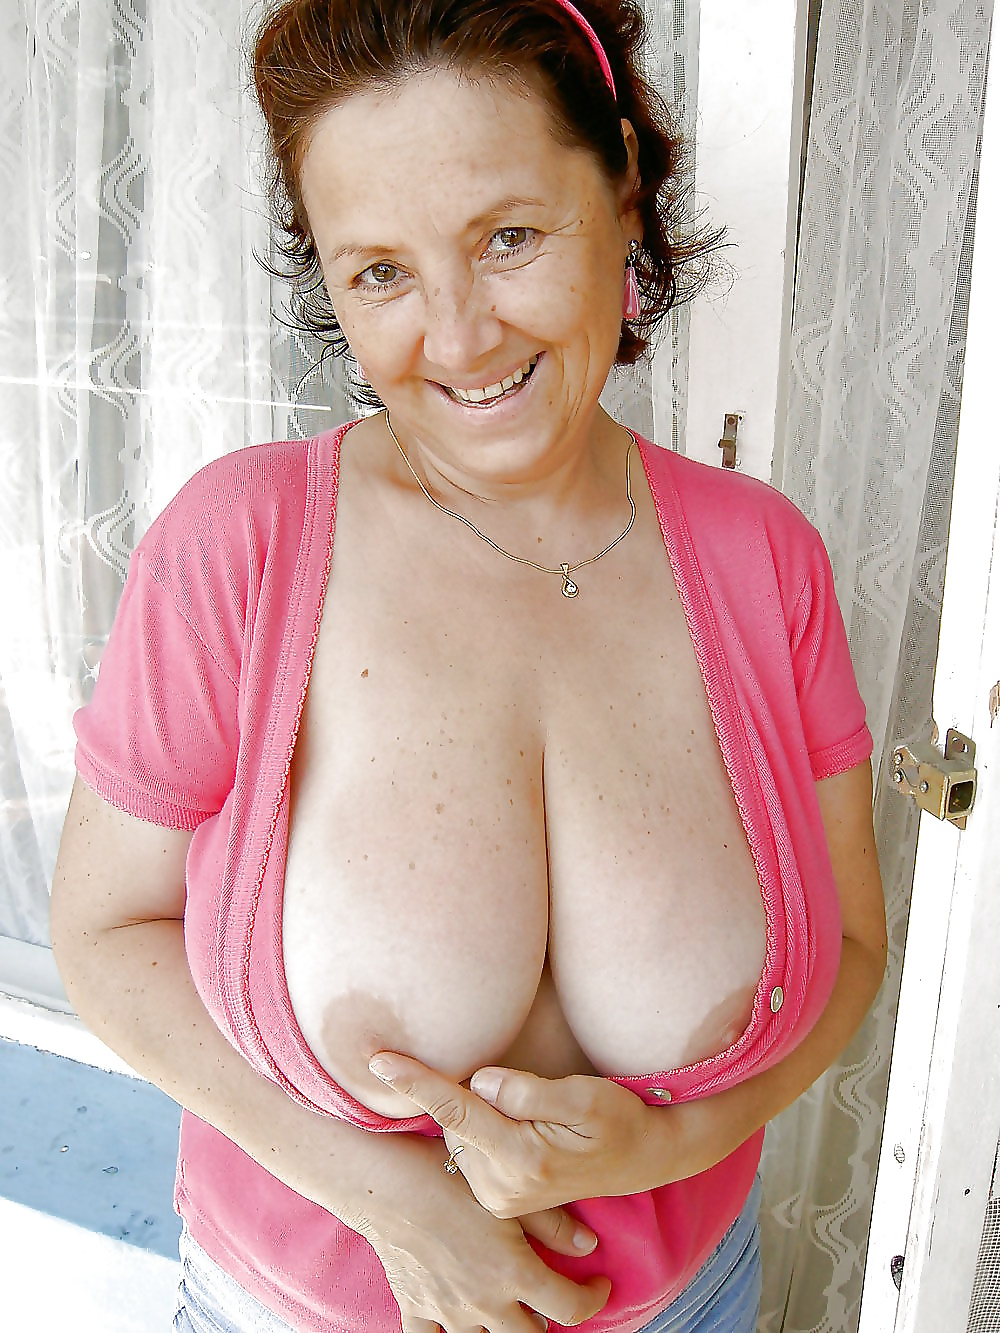 Big tited mature lady shows how its done rm 10